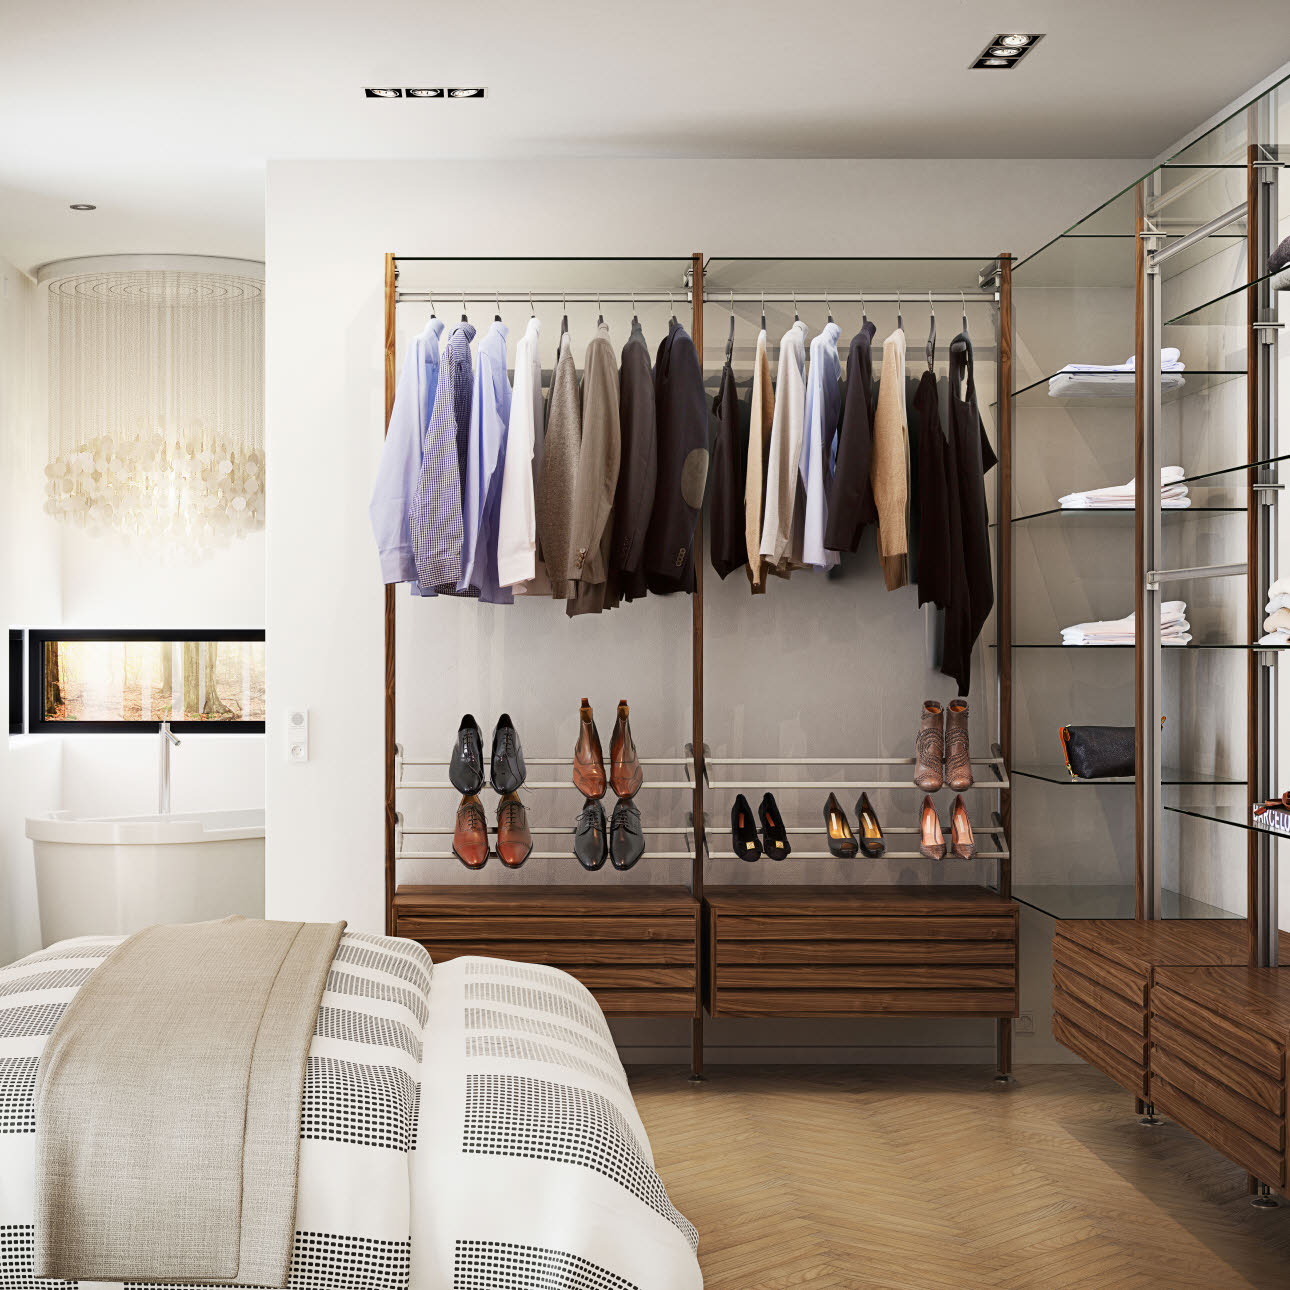 ikea wardrobe closets ikea wardrobe closets best 25 pax. Black Bedroom Furniture Sets. Home Design Ideas